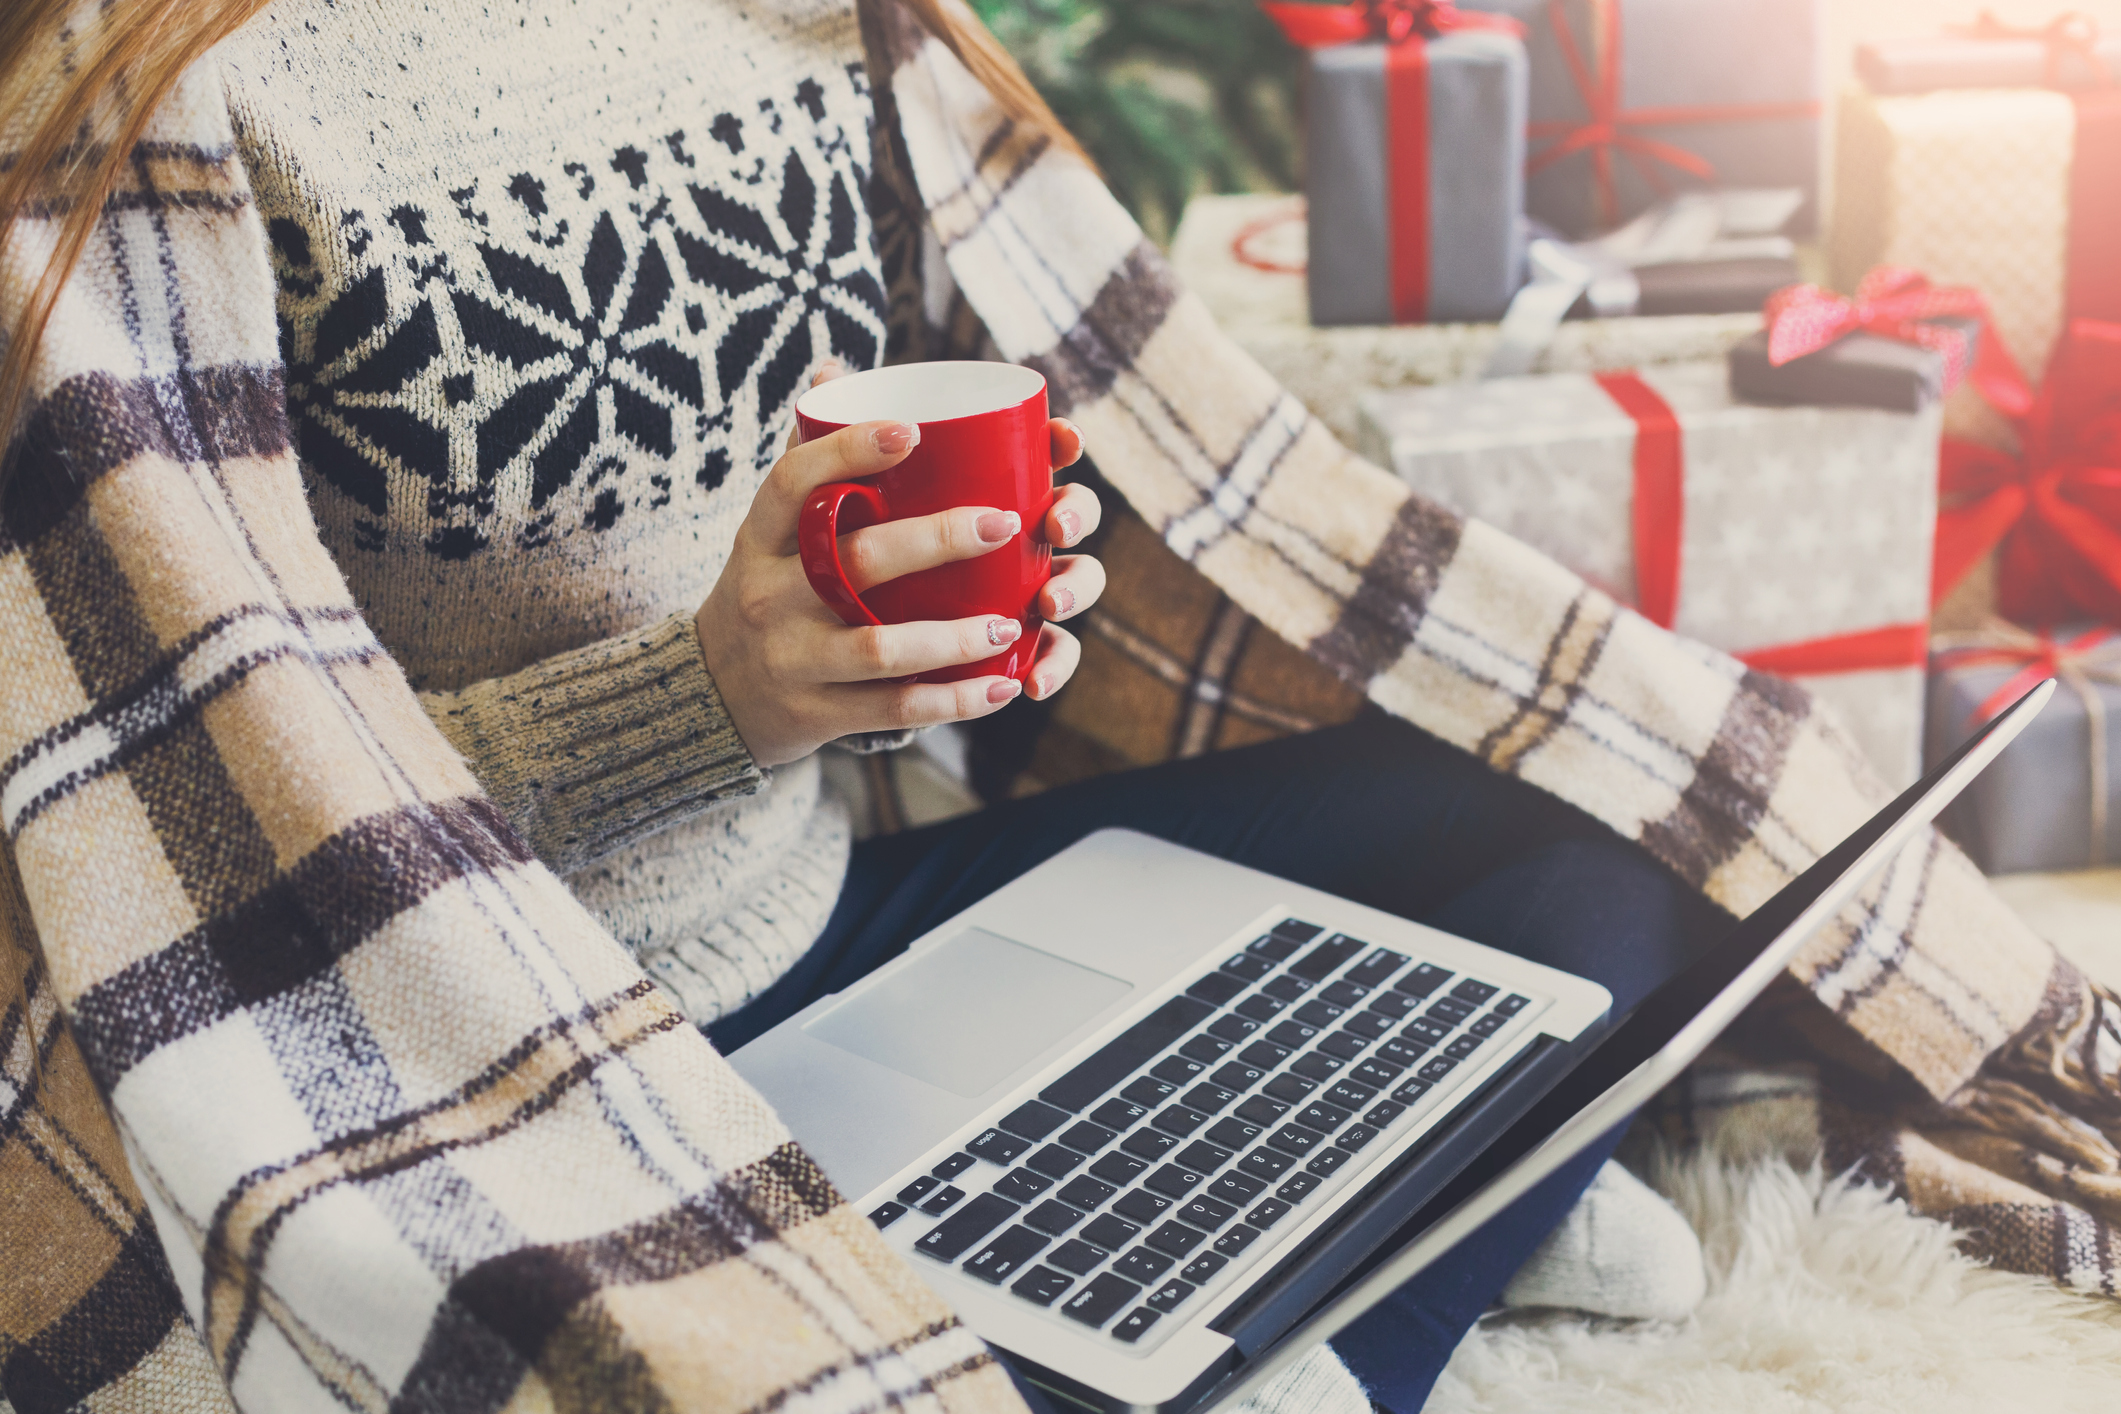 A woman holding a cup of coffee and a laptop with a blanket and presents around her.